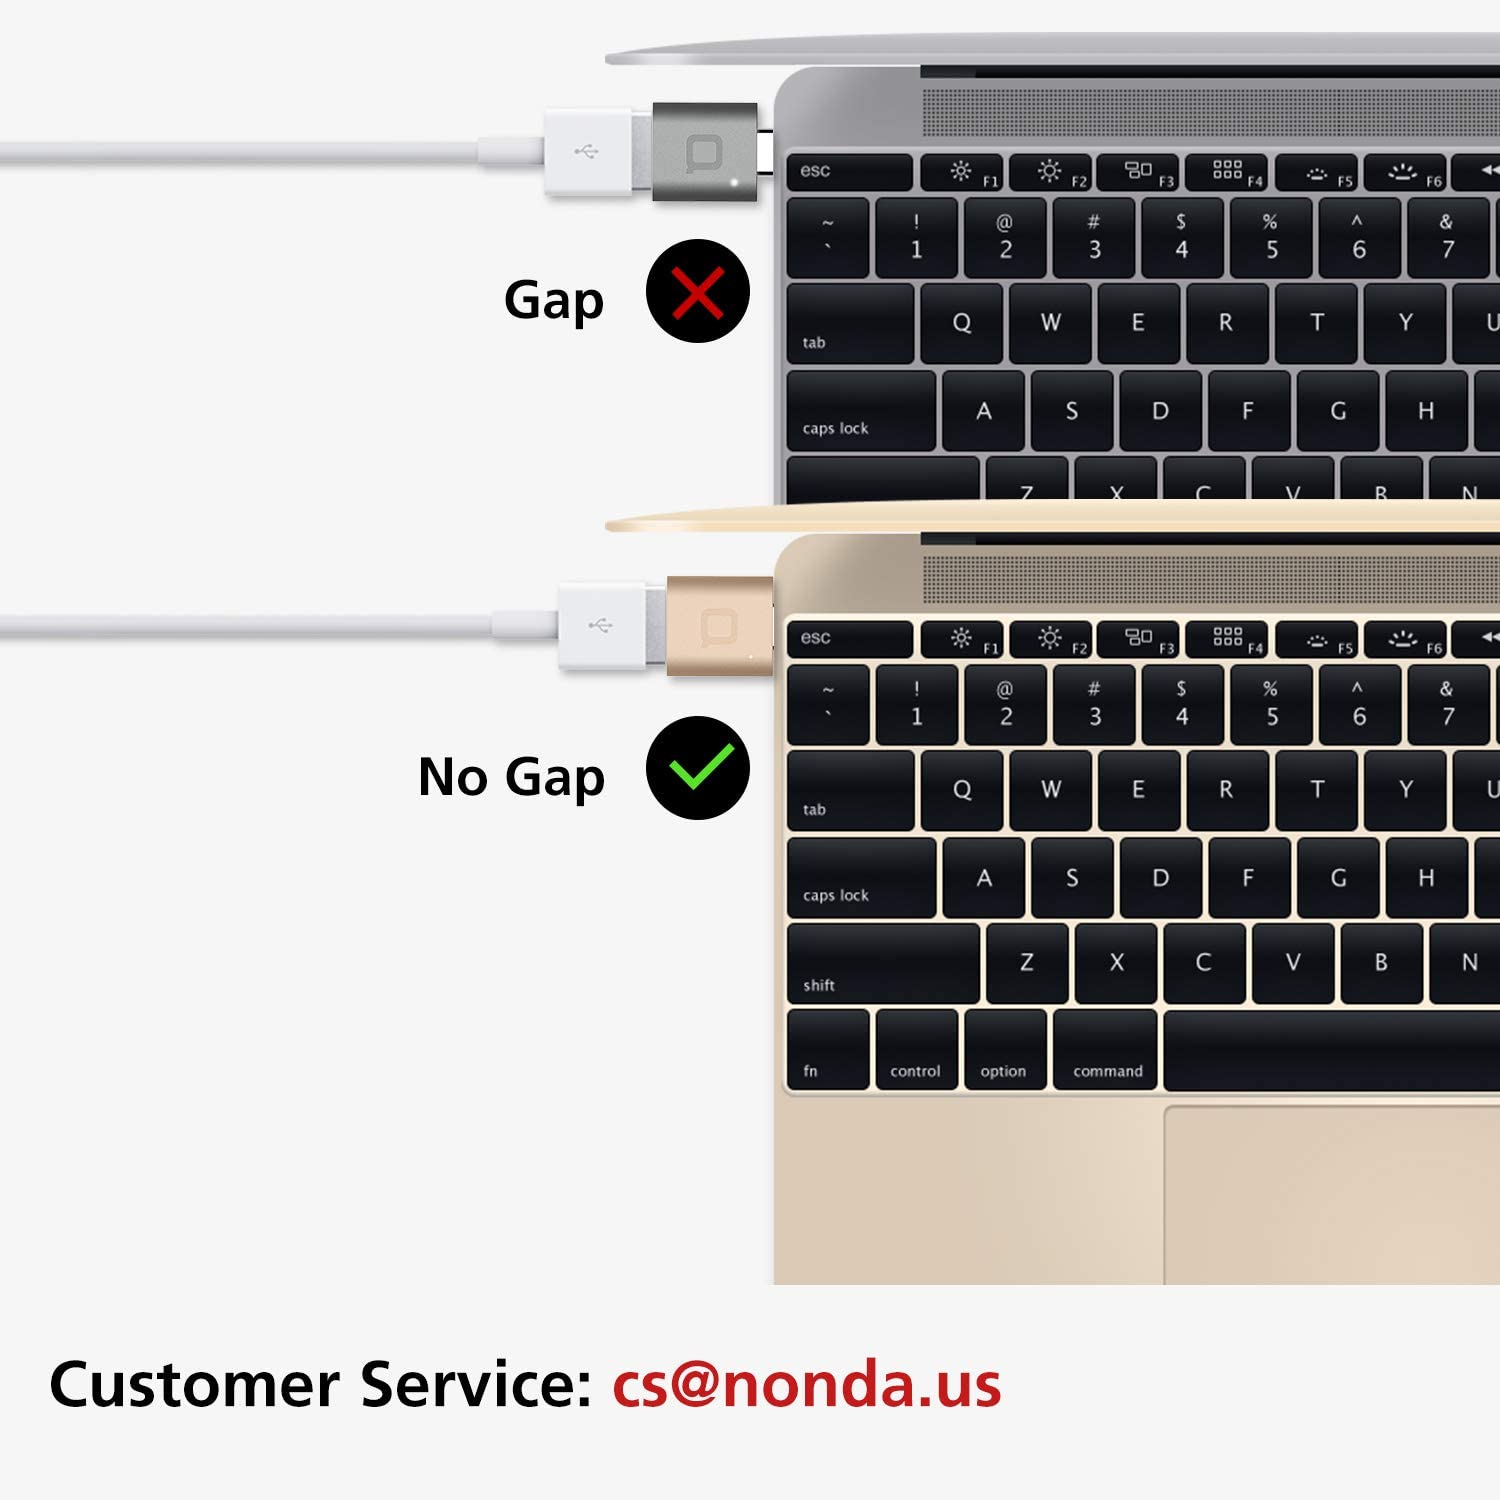 nonda USB C to USB Adapter,USB-C to USB 3.0 Adapter,USB Type-C to USB,Thunderbolt 3 to USB Female Adapter OTG for MacBook Pro2019,MacBook Air 2020,iPad Pro 2020,More Type-C Devices(Space Gray)